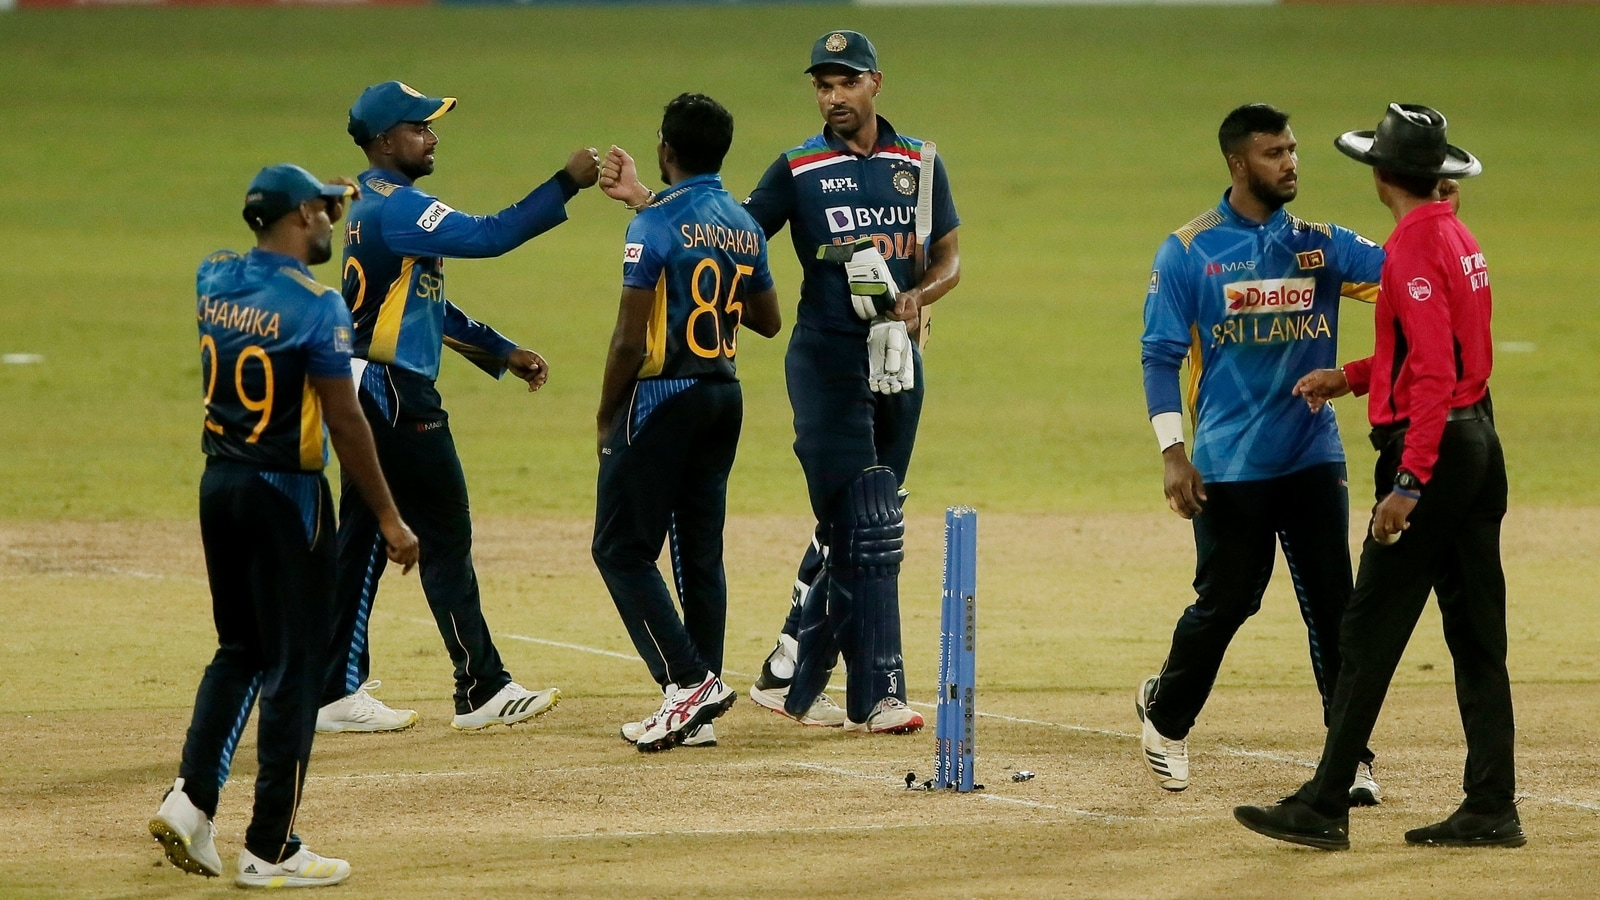 Ind vs SL Highlights 1st ODI: India beat Sri Lanka by 7 wickets to take 1-0 lead in the 3-match series